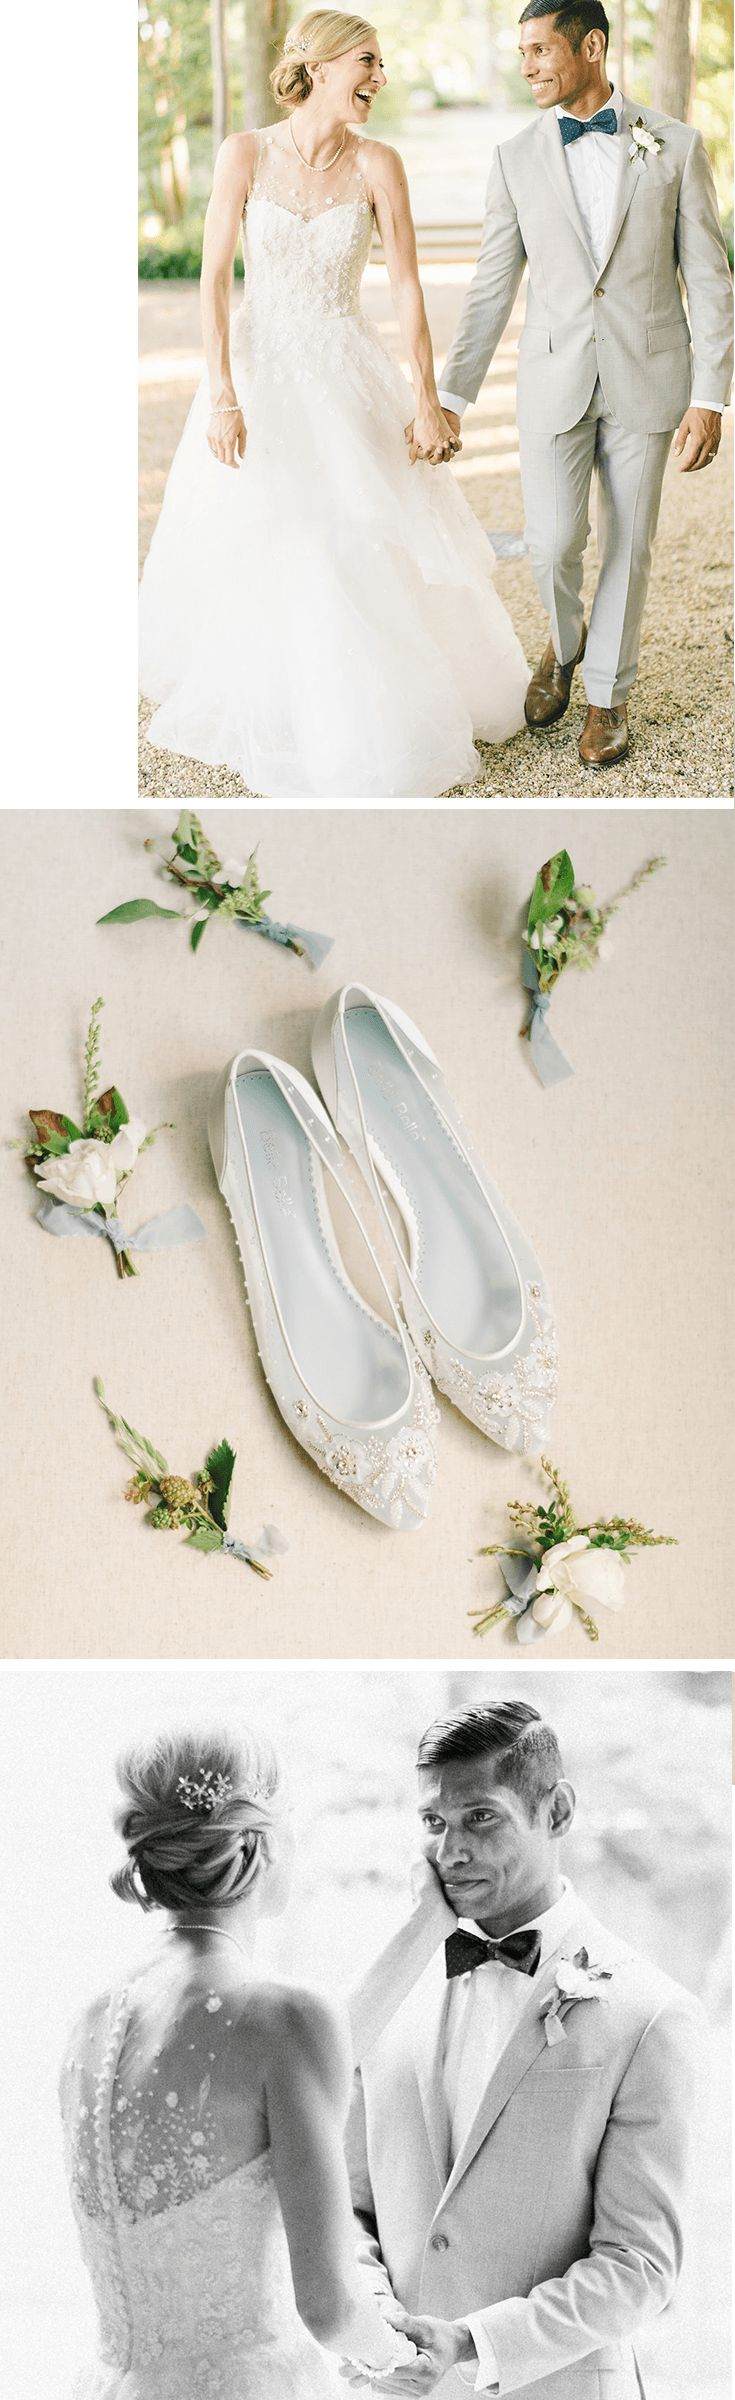 We are just as happy to see our #RealBride Lauren in our Bella Belle Adora comfortable floral beaded Cinderella wedding flats, as she was at her classic Italian style DC wedding. Wearing a beautiful and romantic Amsale wedding dress from Kleinfeld Bridal, the comfortable wedding shoe go hand in hand wit the simple wedding dress. Check out our blog to see the prettiest real bride weddings of 2018 for your italian garden style wedding inspiration.